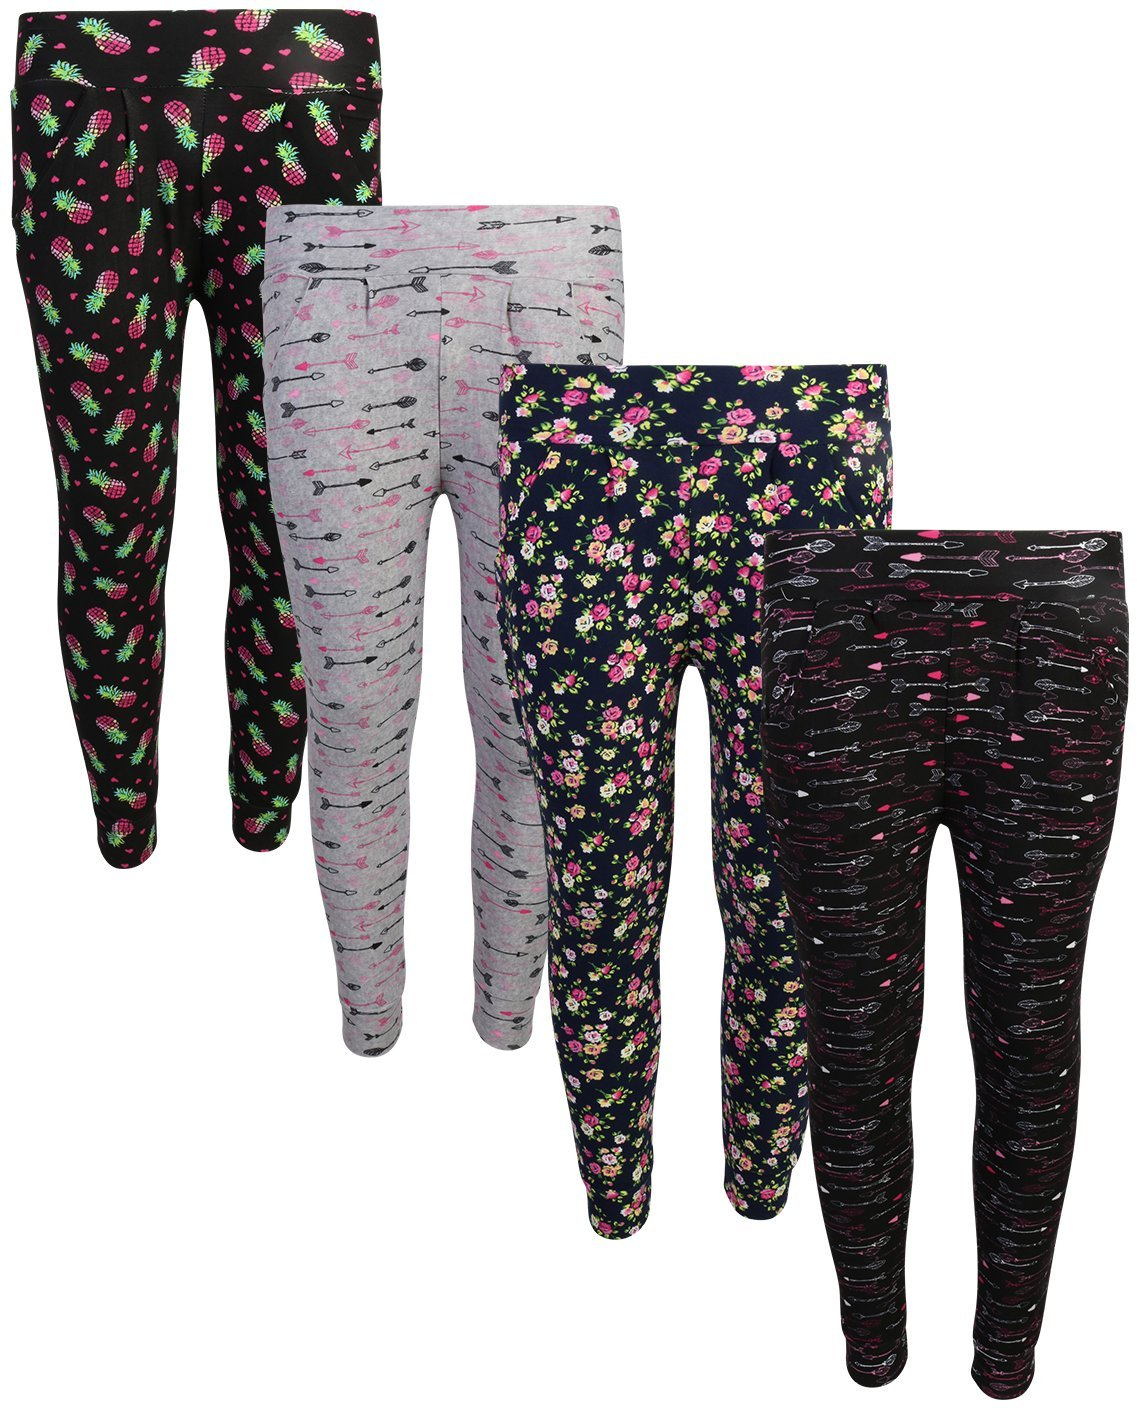 Real Love Girls Yummy Jogger Pants (4 Pack) Flower/Arrow/Pineapple, Size 5/6'